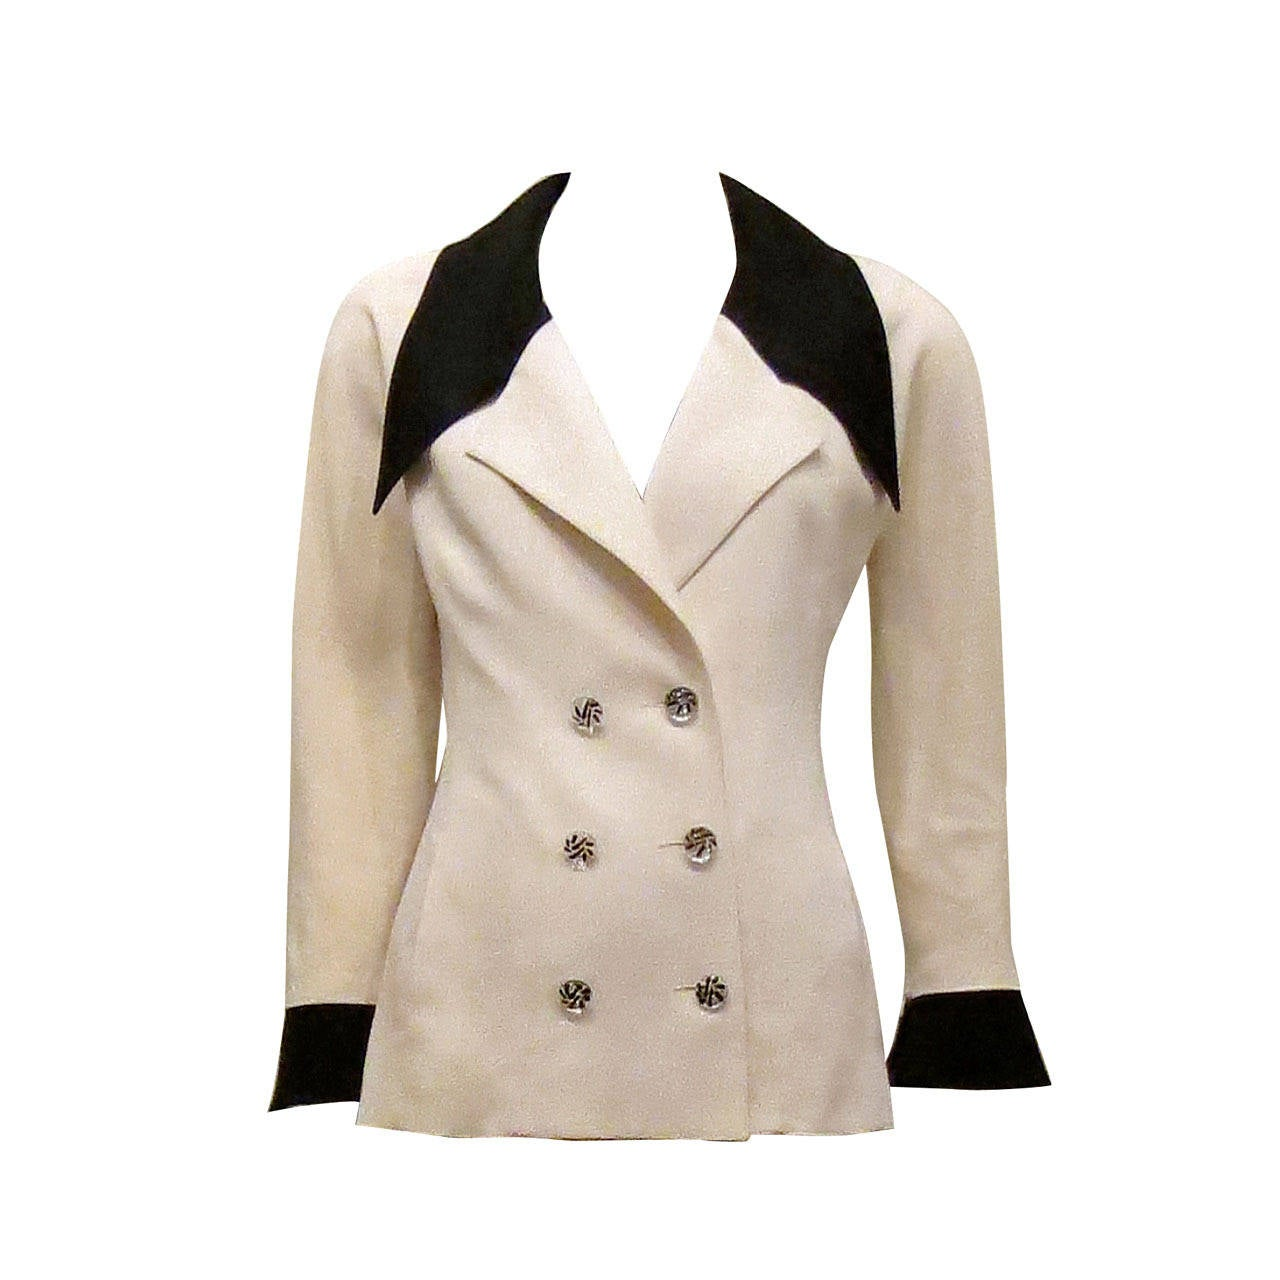 In spring you can always match a cute dress with a pink or a floral blazer looks perfect with a pair of skinny white pants and a black cami top underneath. In Rosegal we have varieties style of blazer, like black & blue color, casual, royal, striped, denim fabric and so on!